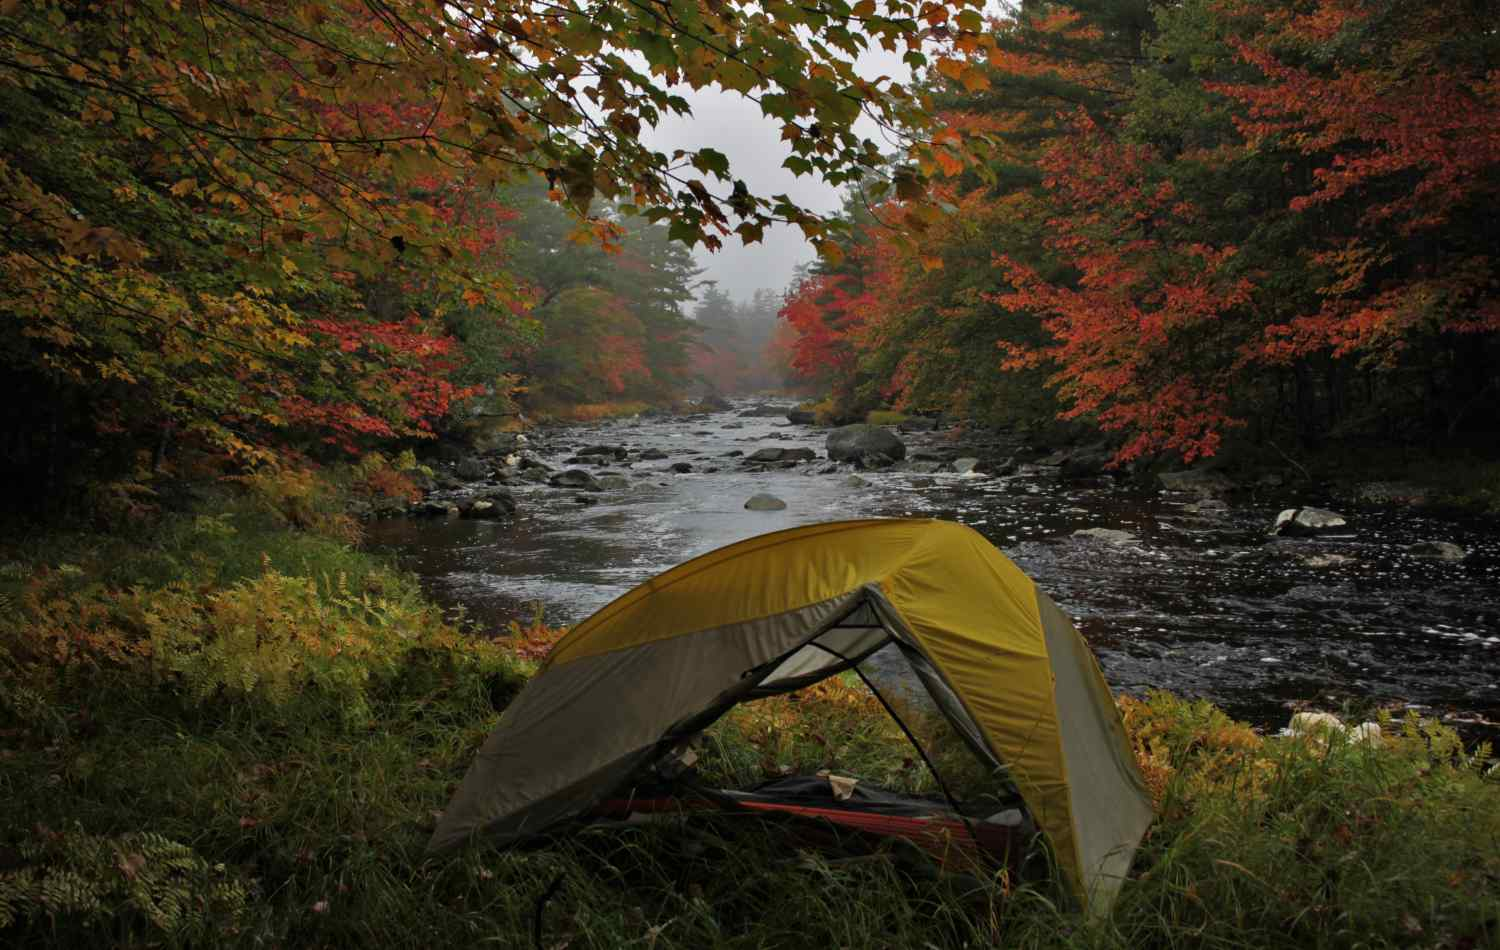 A tent in a Riverside